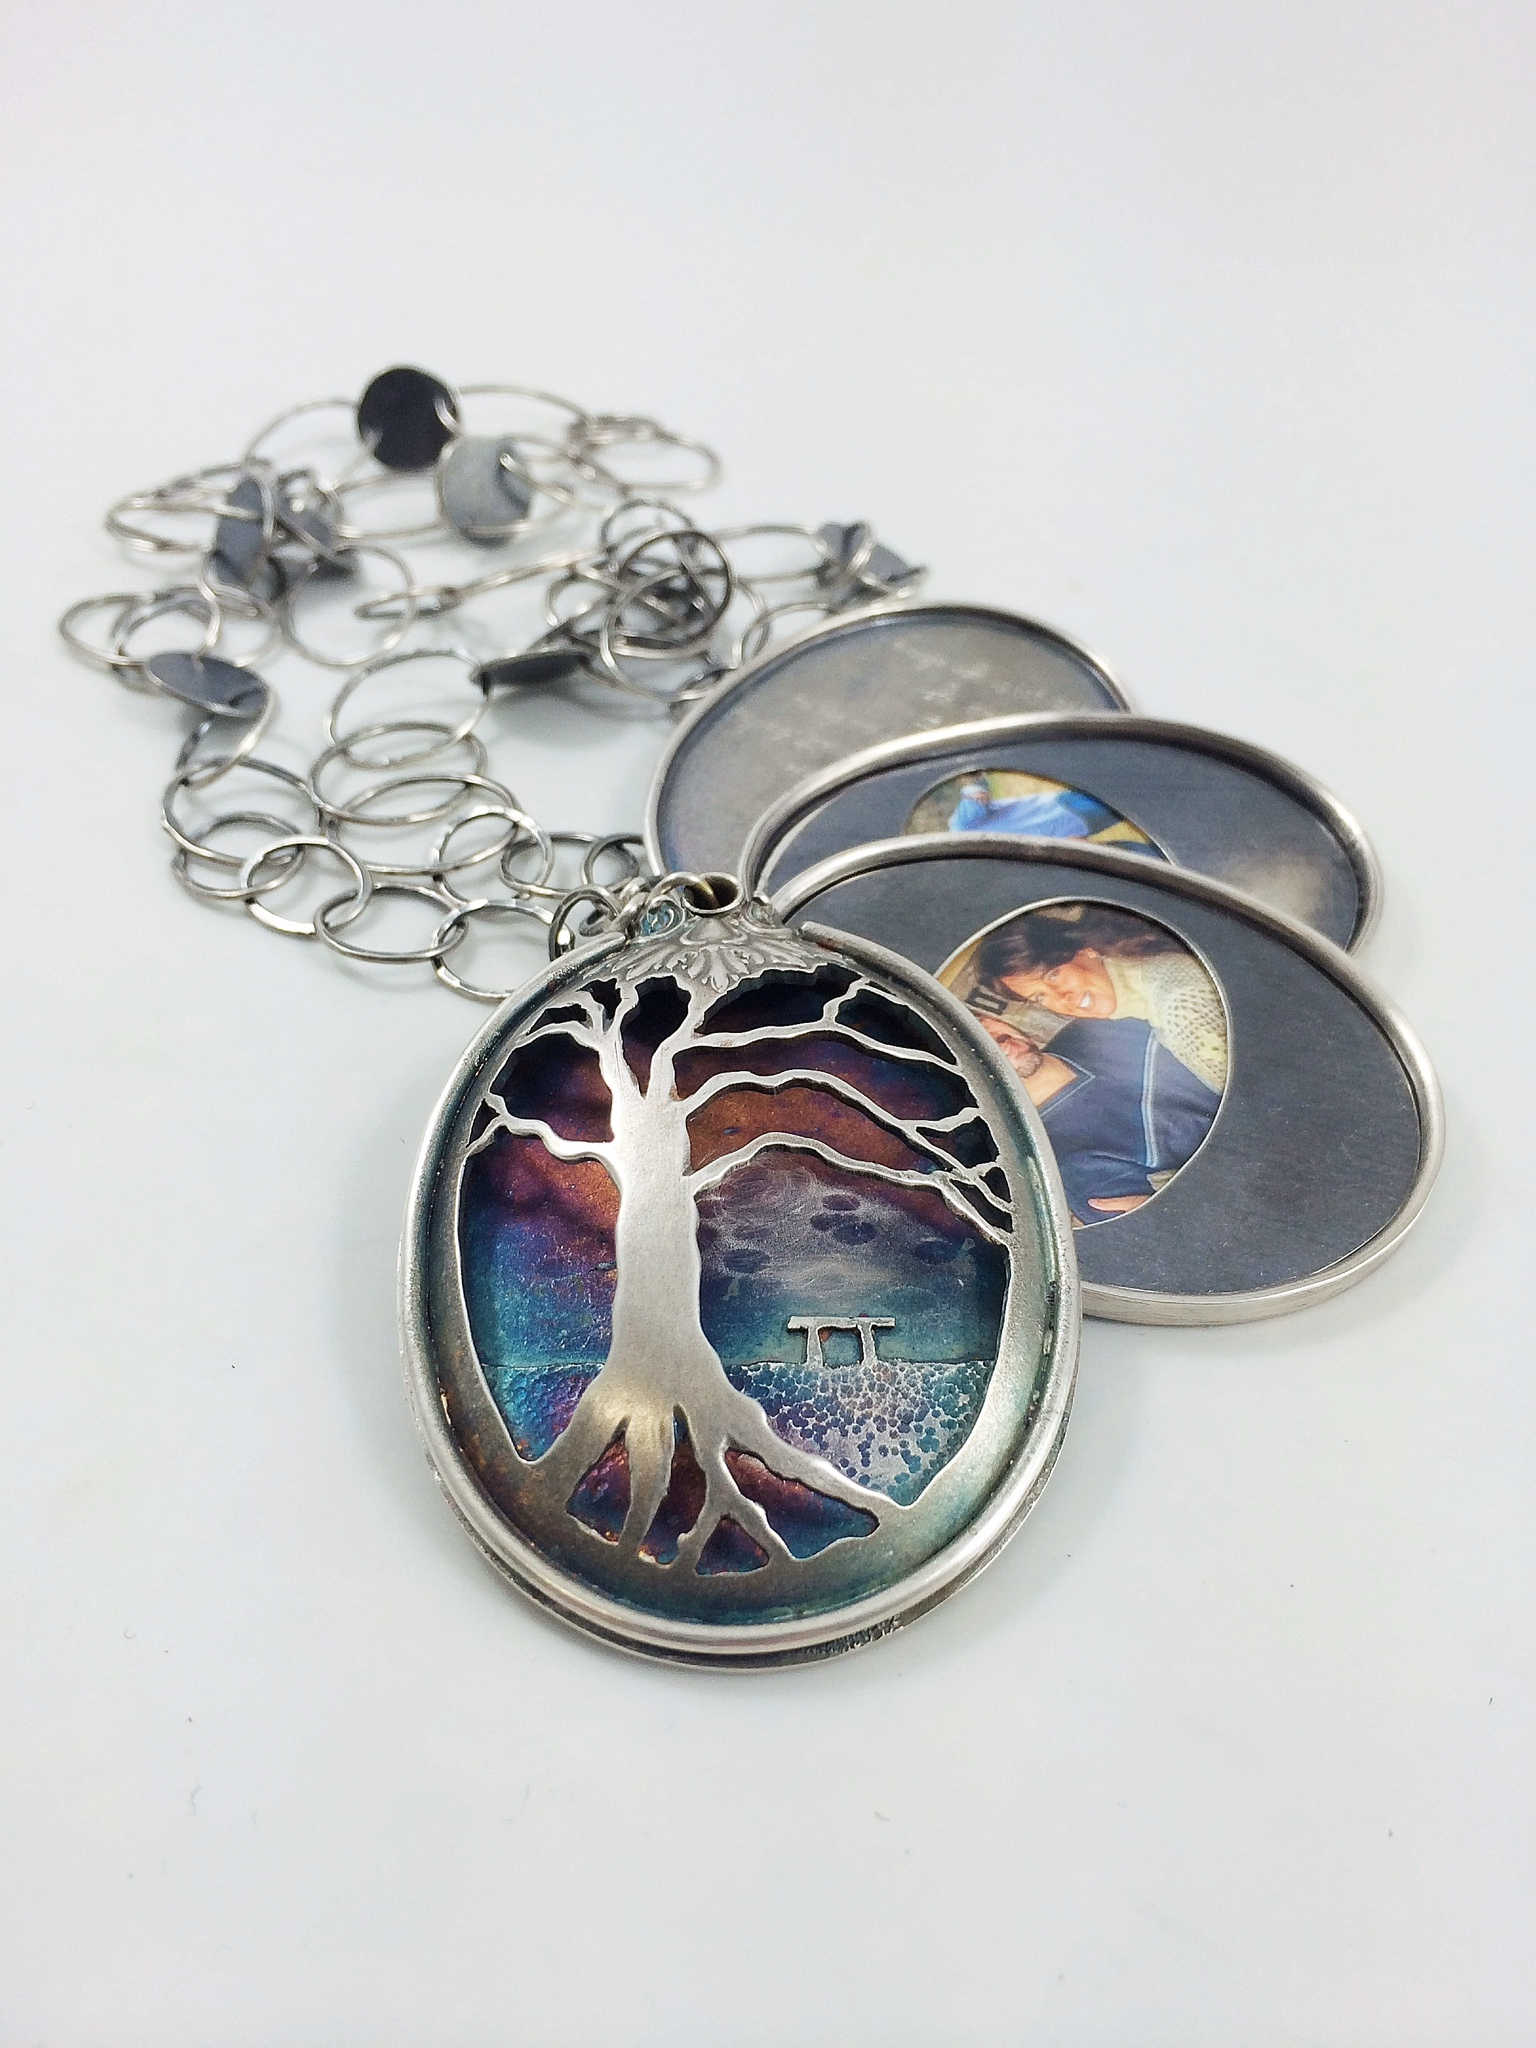 Scot & Alecia's Locket - sterling silver spoon, sterling silver, patina, family photographs